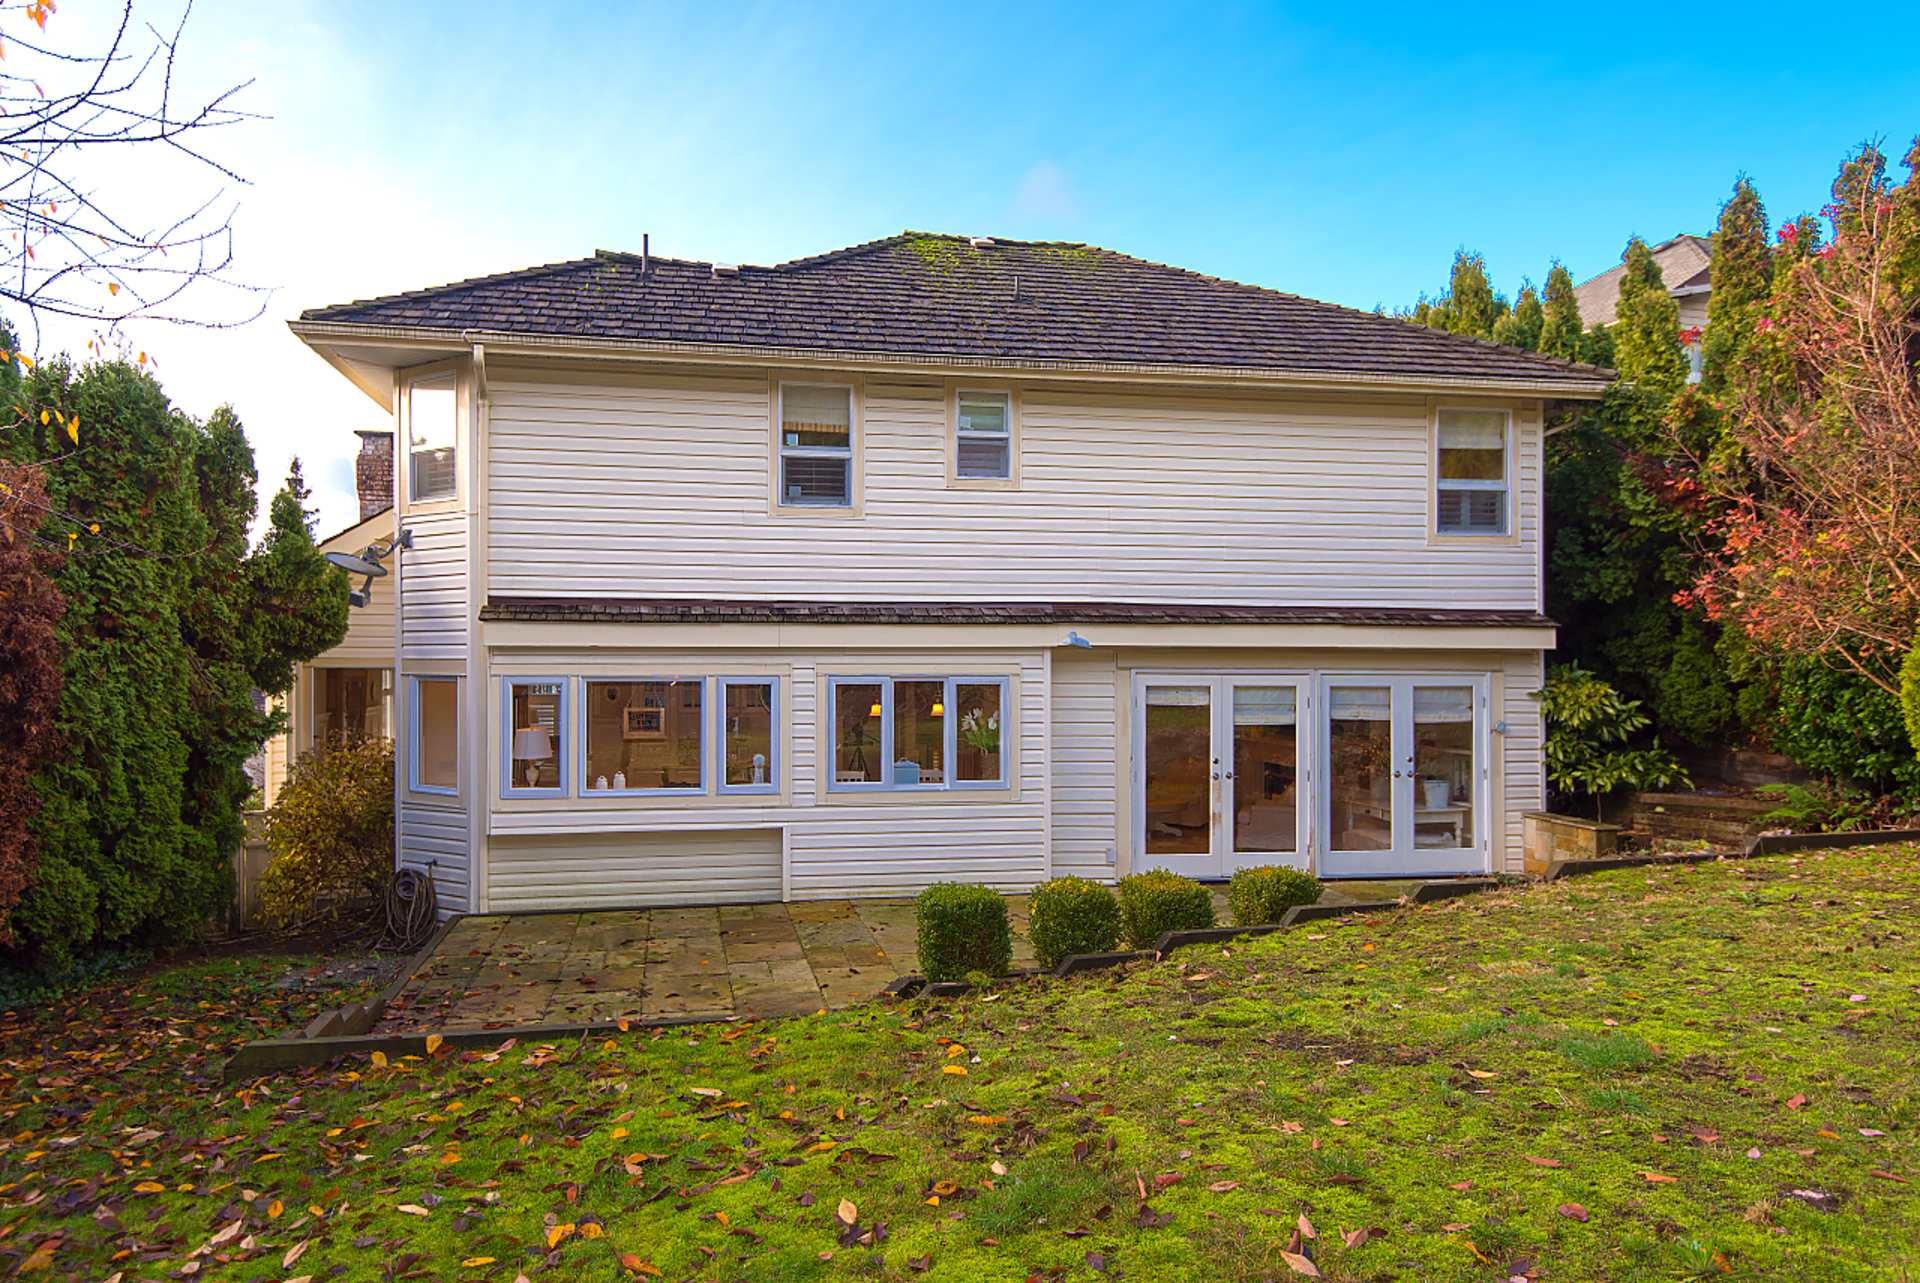 087 at 38 Wildwood Drive, Heritage Mountain, Port Moody